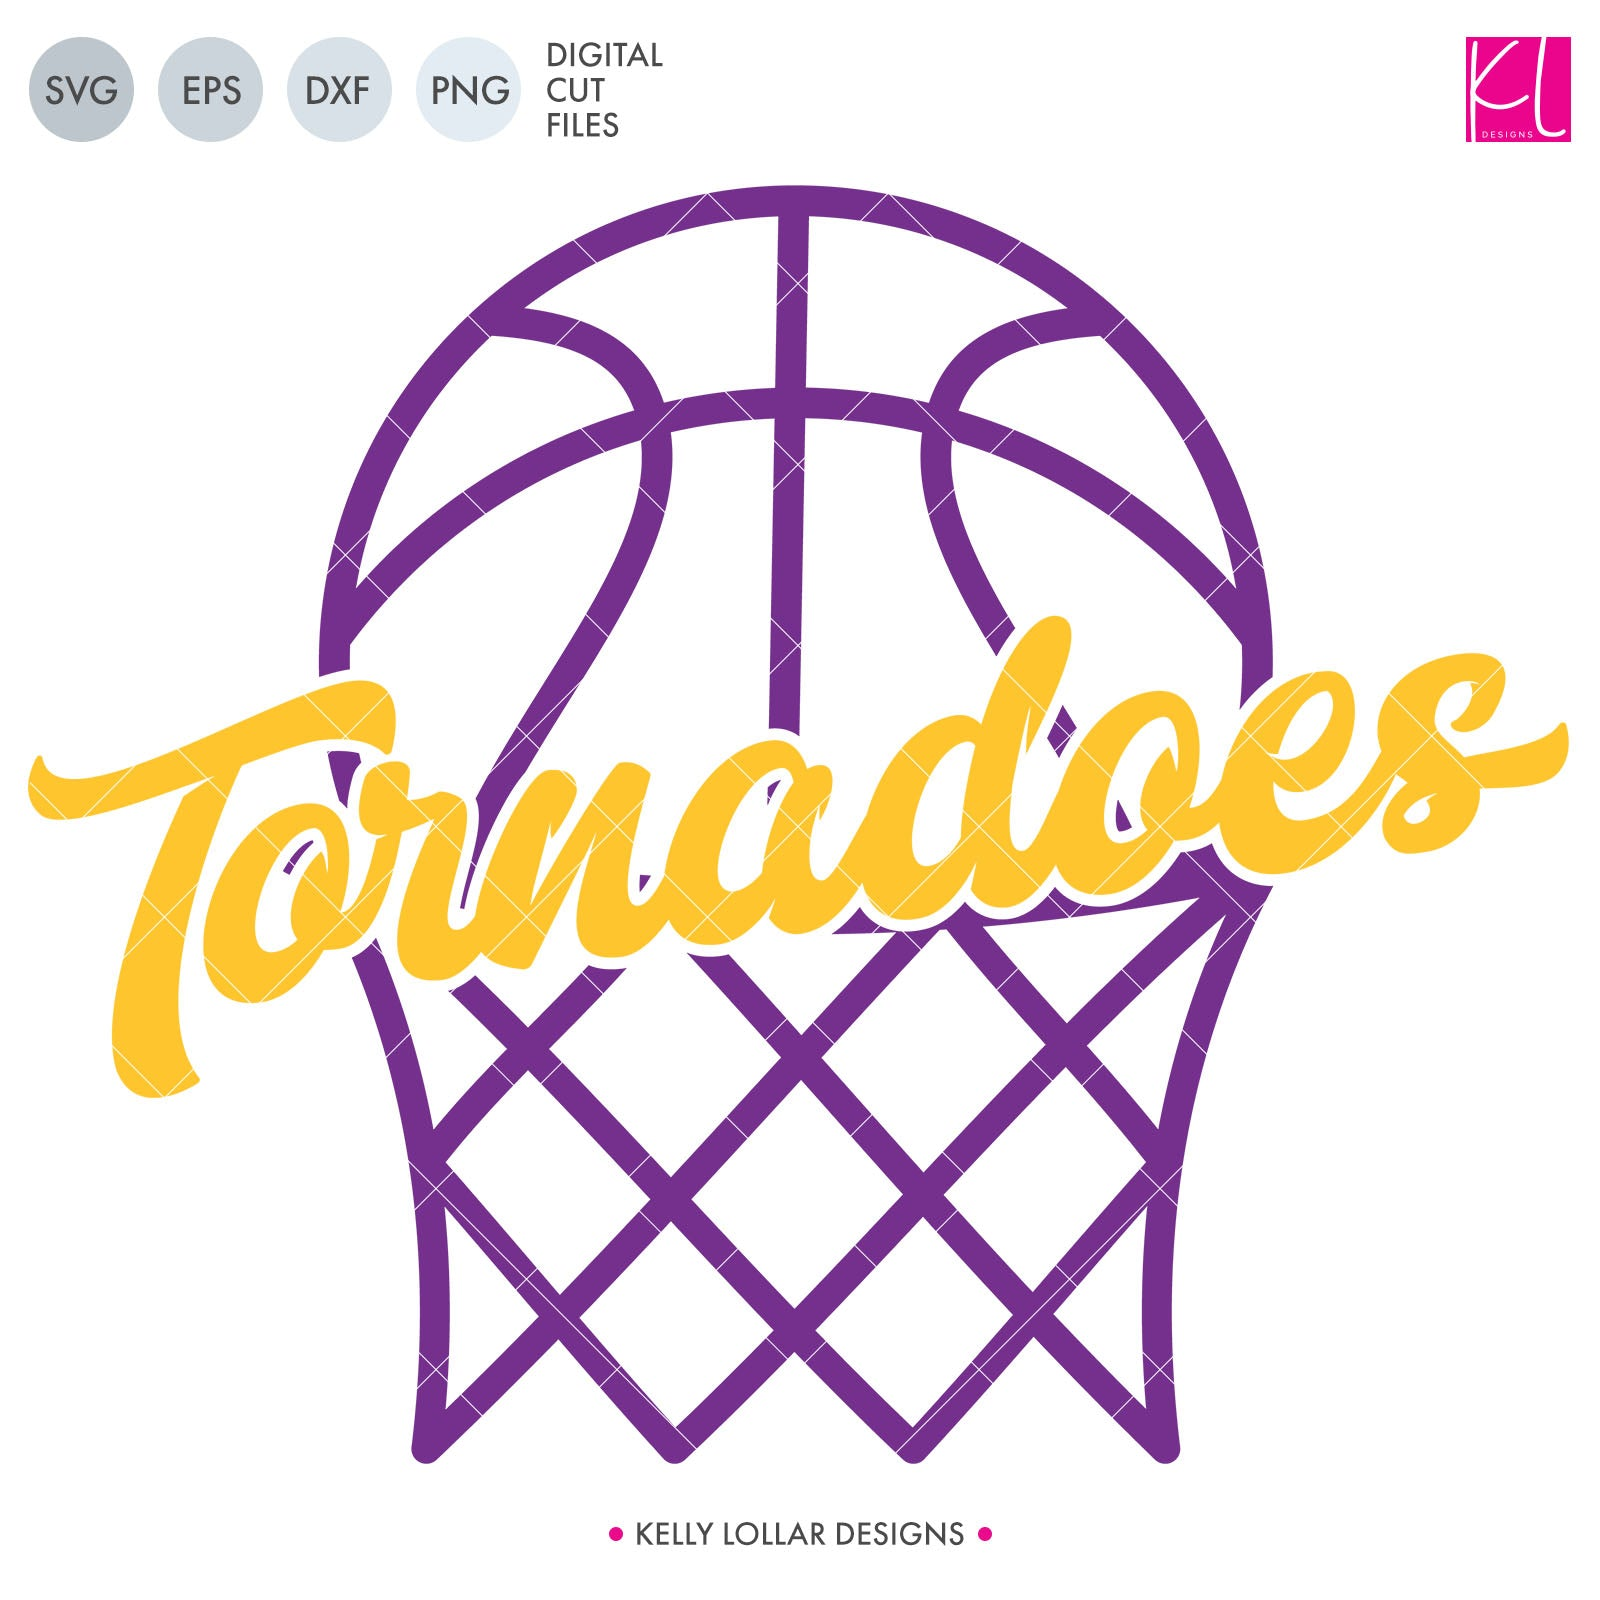 Tornadoes Basketball Bundle | SVG DXF EPS PNG Cut Files It's basketball season, so you Tornado Basketball crafter know what that means ... new spirit shirts! This fourteen-piece bundle includes a little something for everyone - from girly and cute